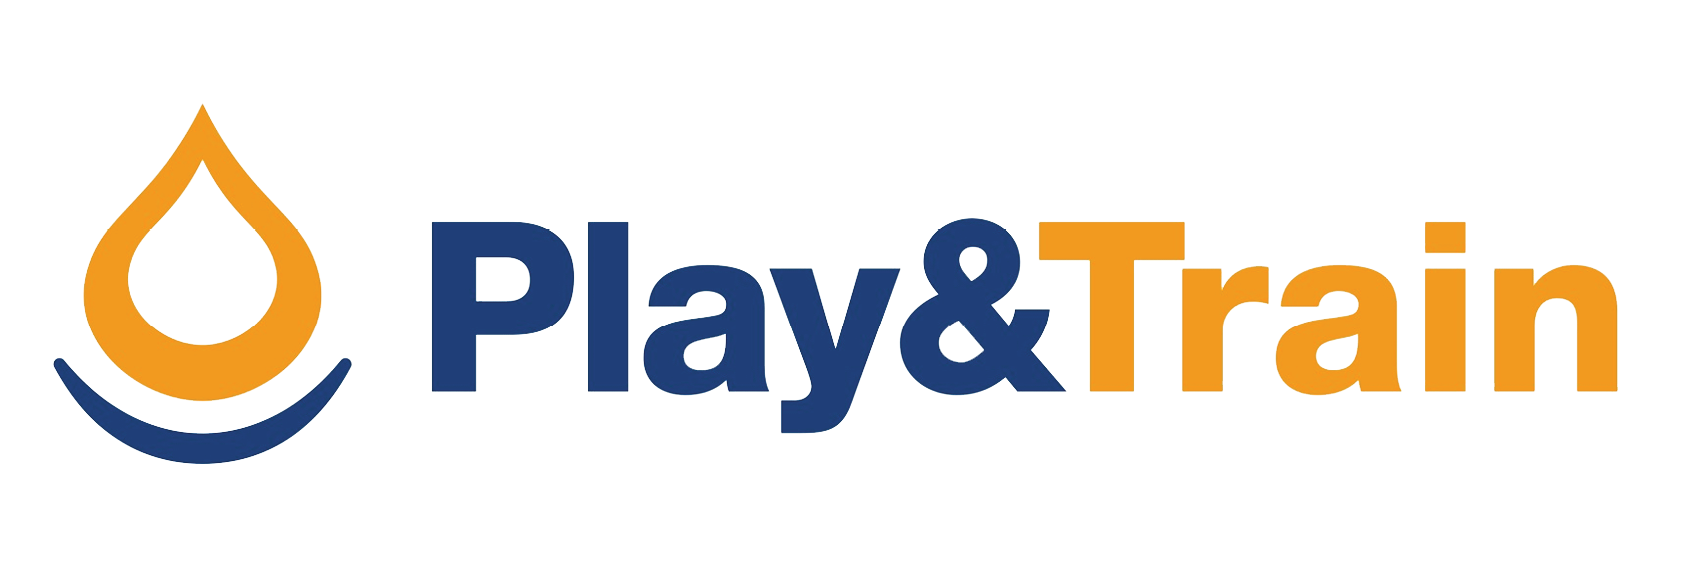 play & train - Play & Train is a non-profit association involved in sport, education and development from the grass roots to the elite level for people with a disability and their families. They facilitate UN Camp Sweden on behalf of the International Paralympics Committee.